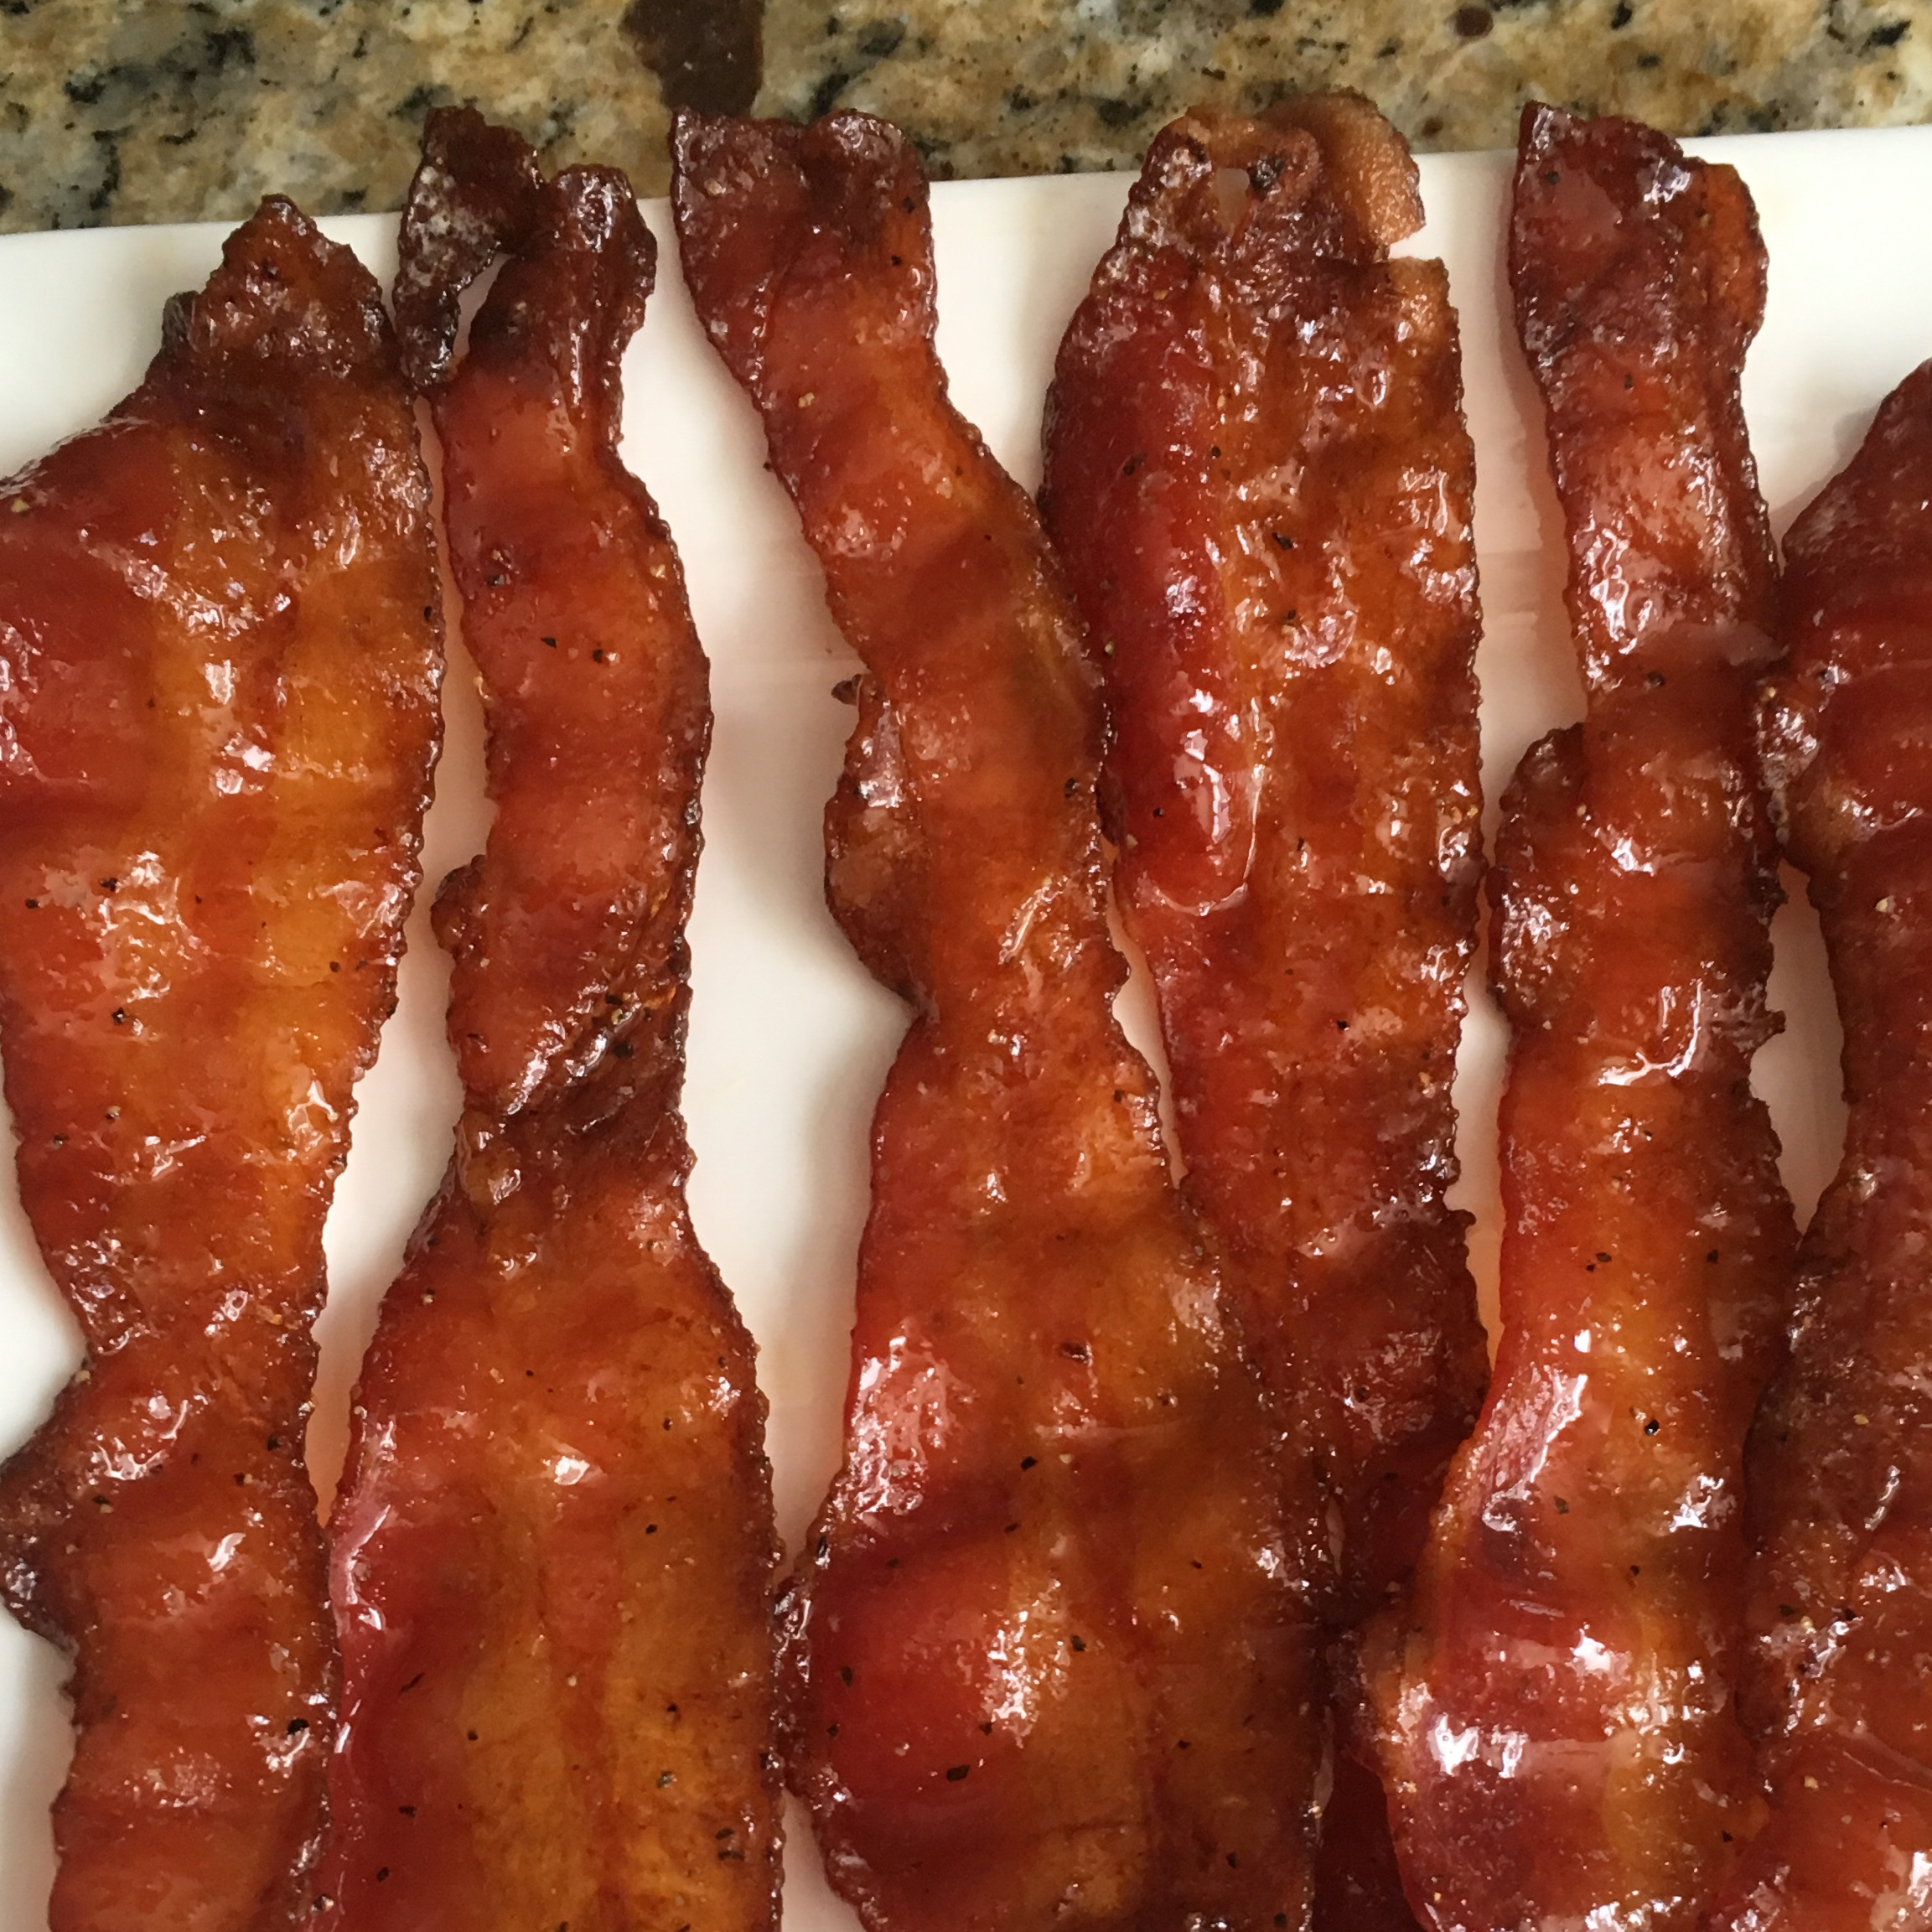 Candied Bacon Jschindin